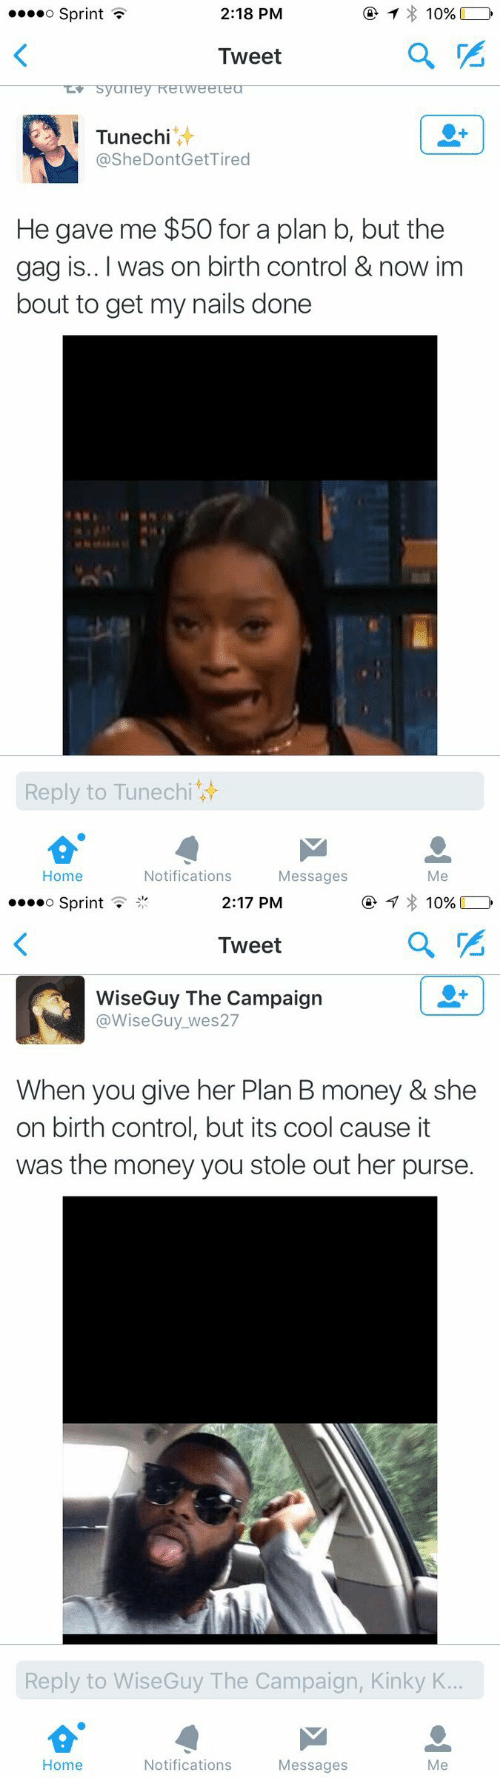 Money, Plan B, and Control: o SprintT  2:18 PM  10%  Tweet  Tunechi  @SheDontGetTired  He gave me $50 for a plan b, but the  gag is.. I was on birth control & now im  bout to get my nails done  Reply to Tunechi  Home  Notifications  Messages  Me   »oo  o Sprint .  2:17 PM  Tweet  WiseGuy The Campaign  @WiseGuy_wes27  When you give her Plan B money & she  on birth control, but its cool cause it  was the money you stole out her purse.  Reply to WiseGuy The Campaign, Kinky K  Home  Notifications  Messages  Me